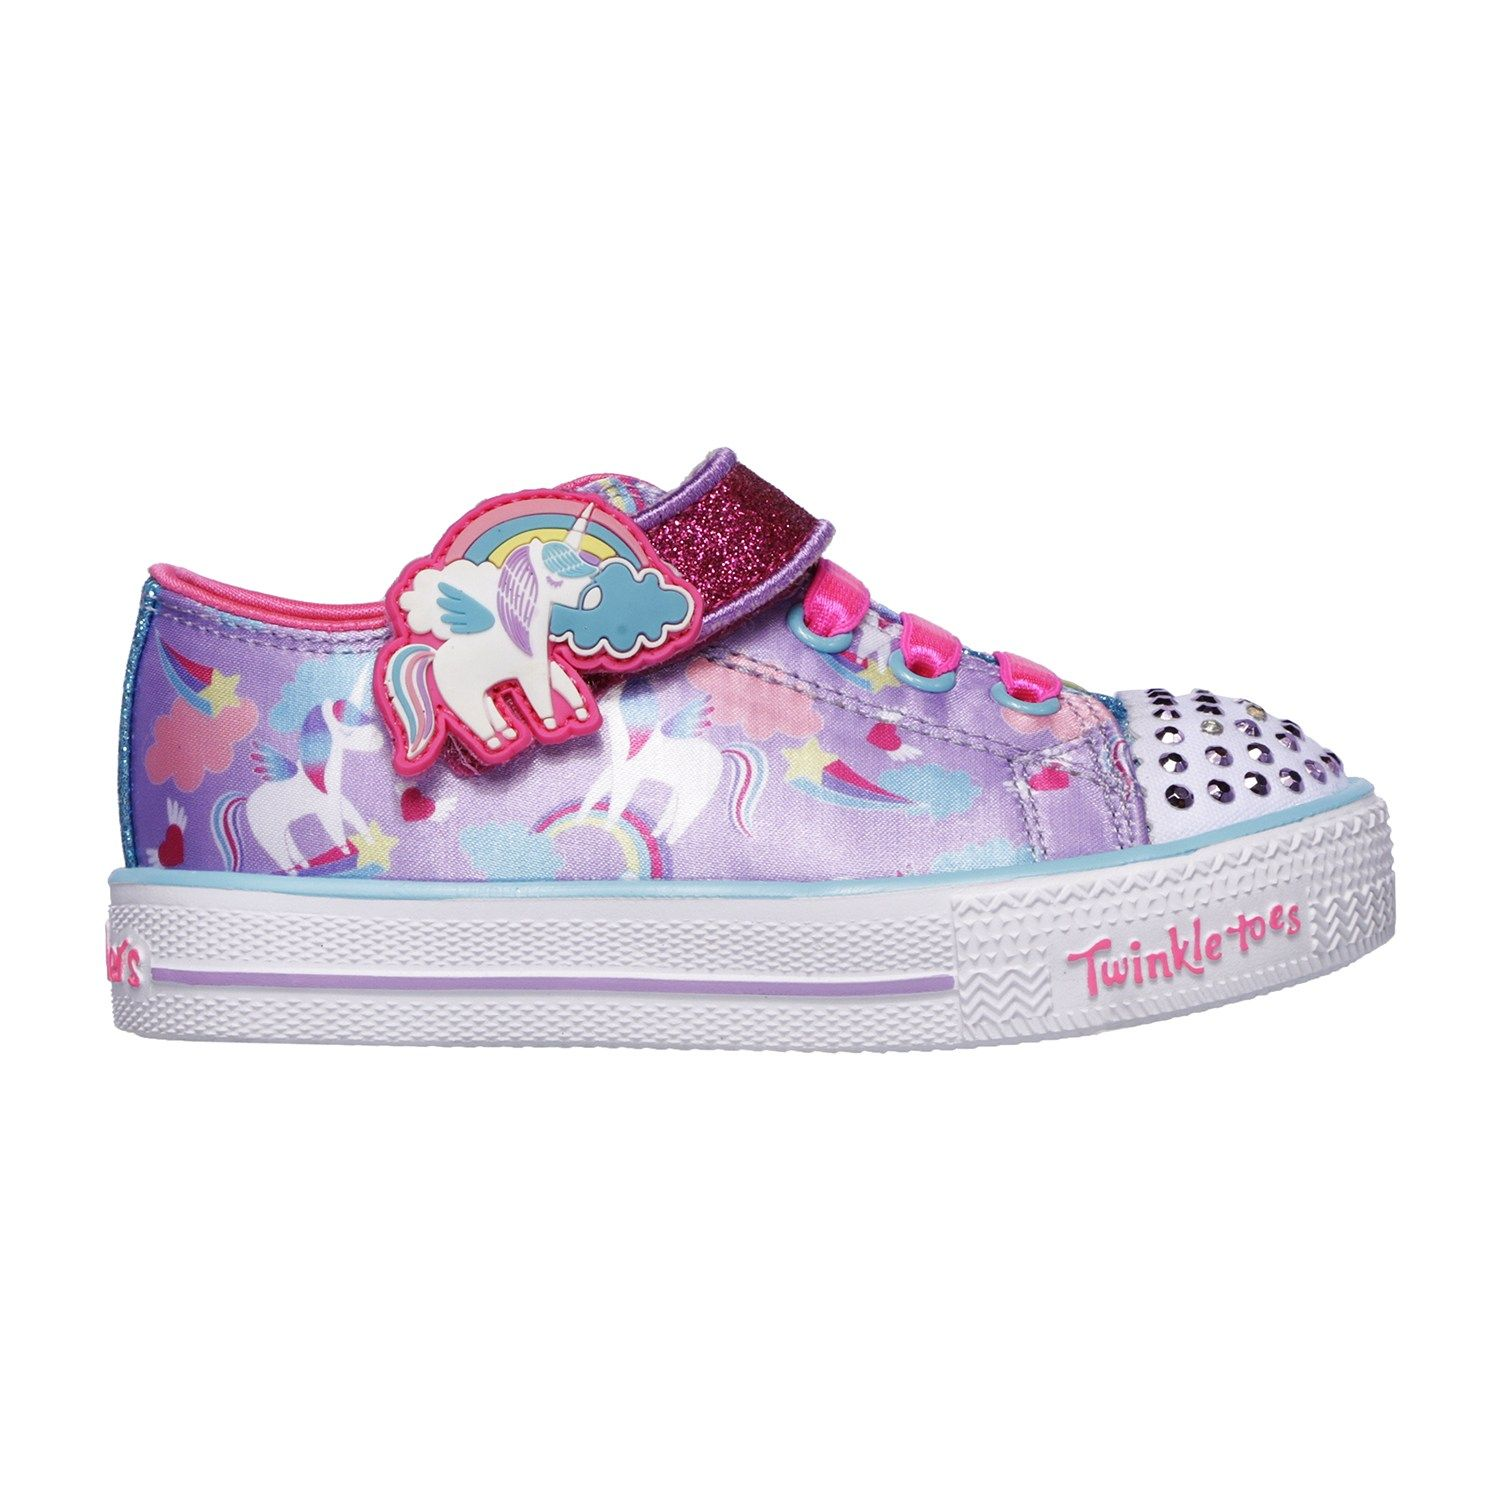 Skechers Twinkle Toes Twinkle Lite Toddler Girls' Light Up